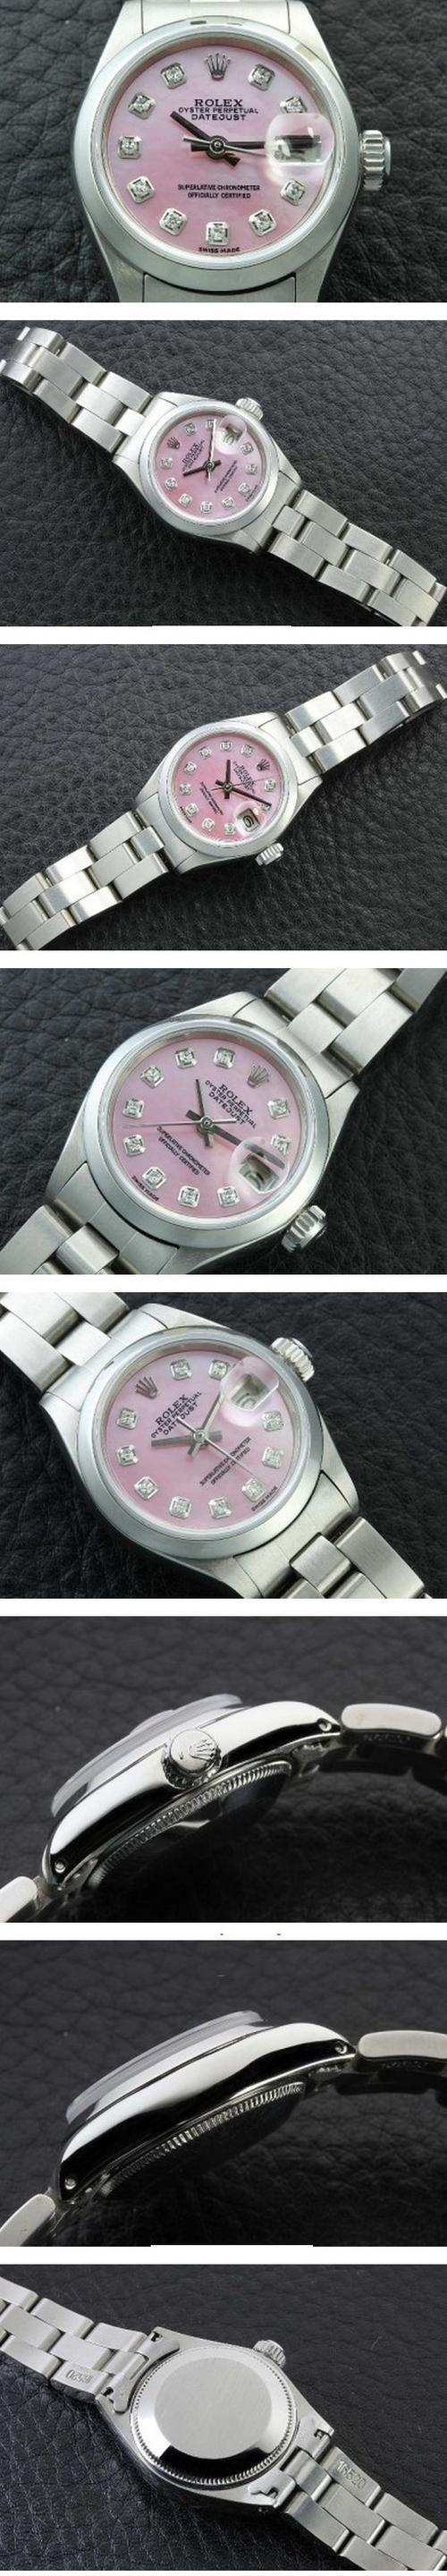 buy ladies diamond pink pearl rolex watches watch online eswift.us